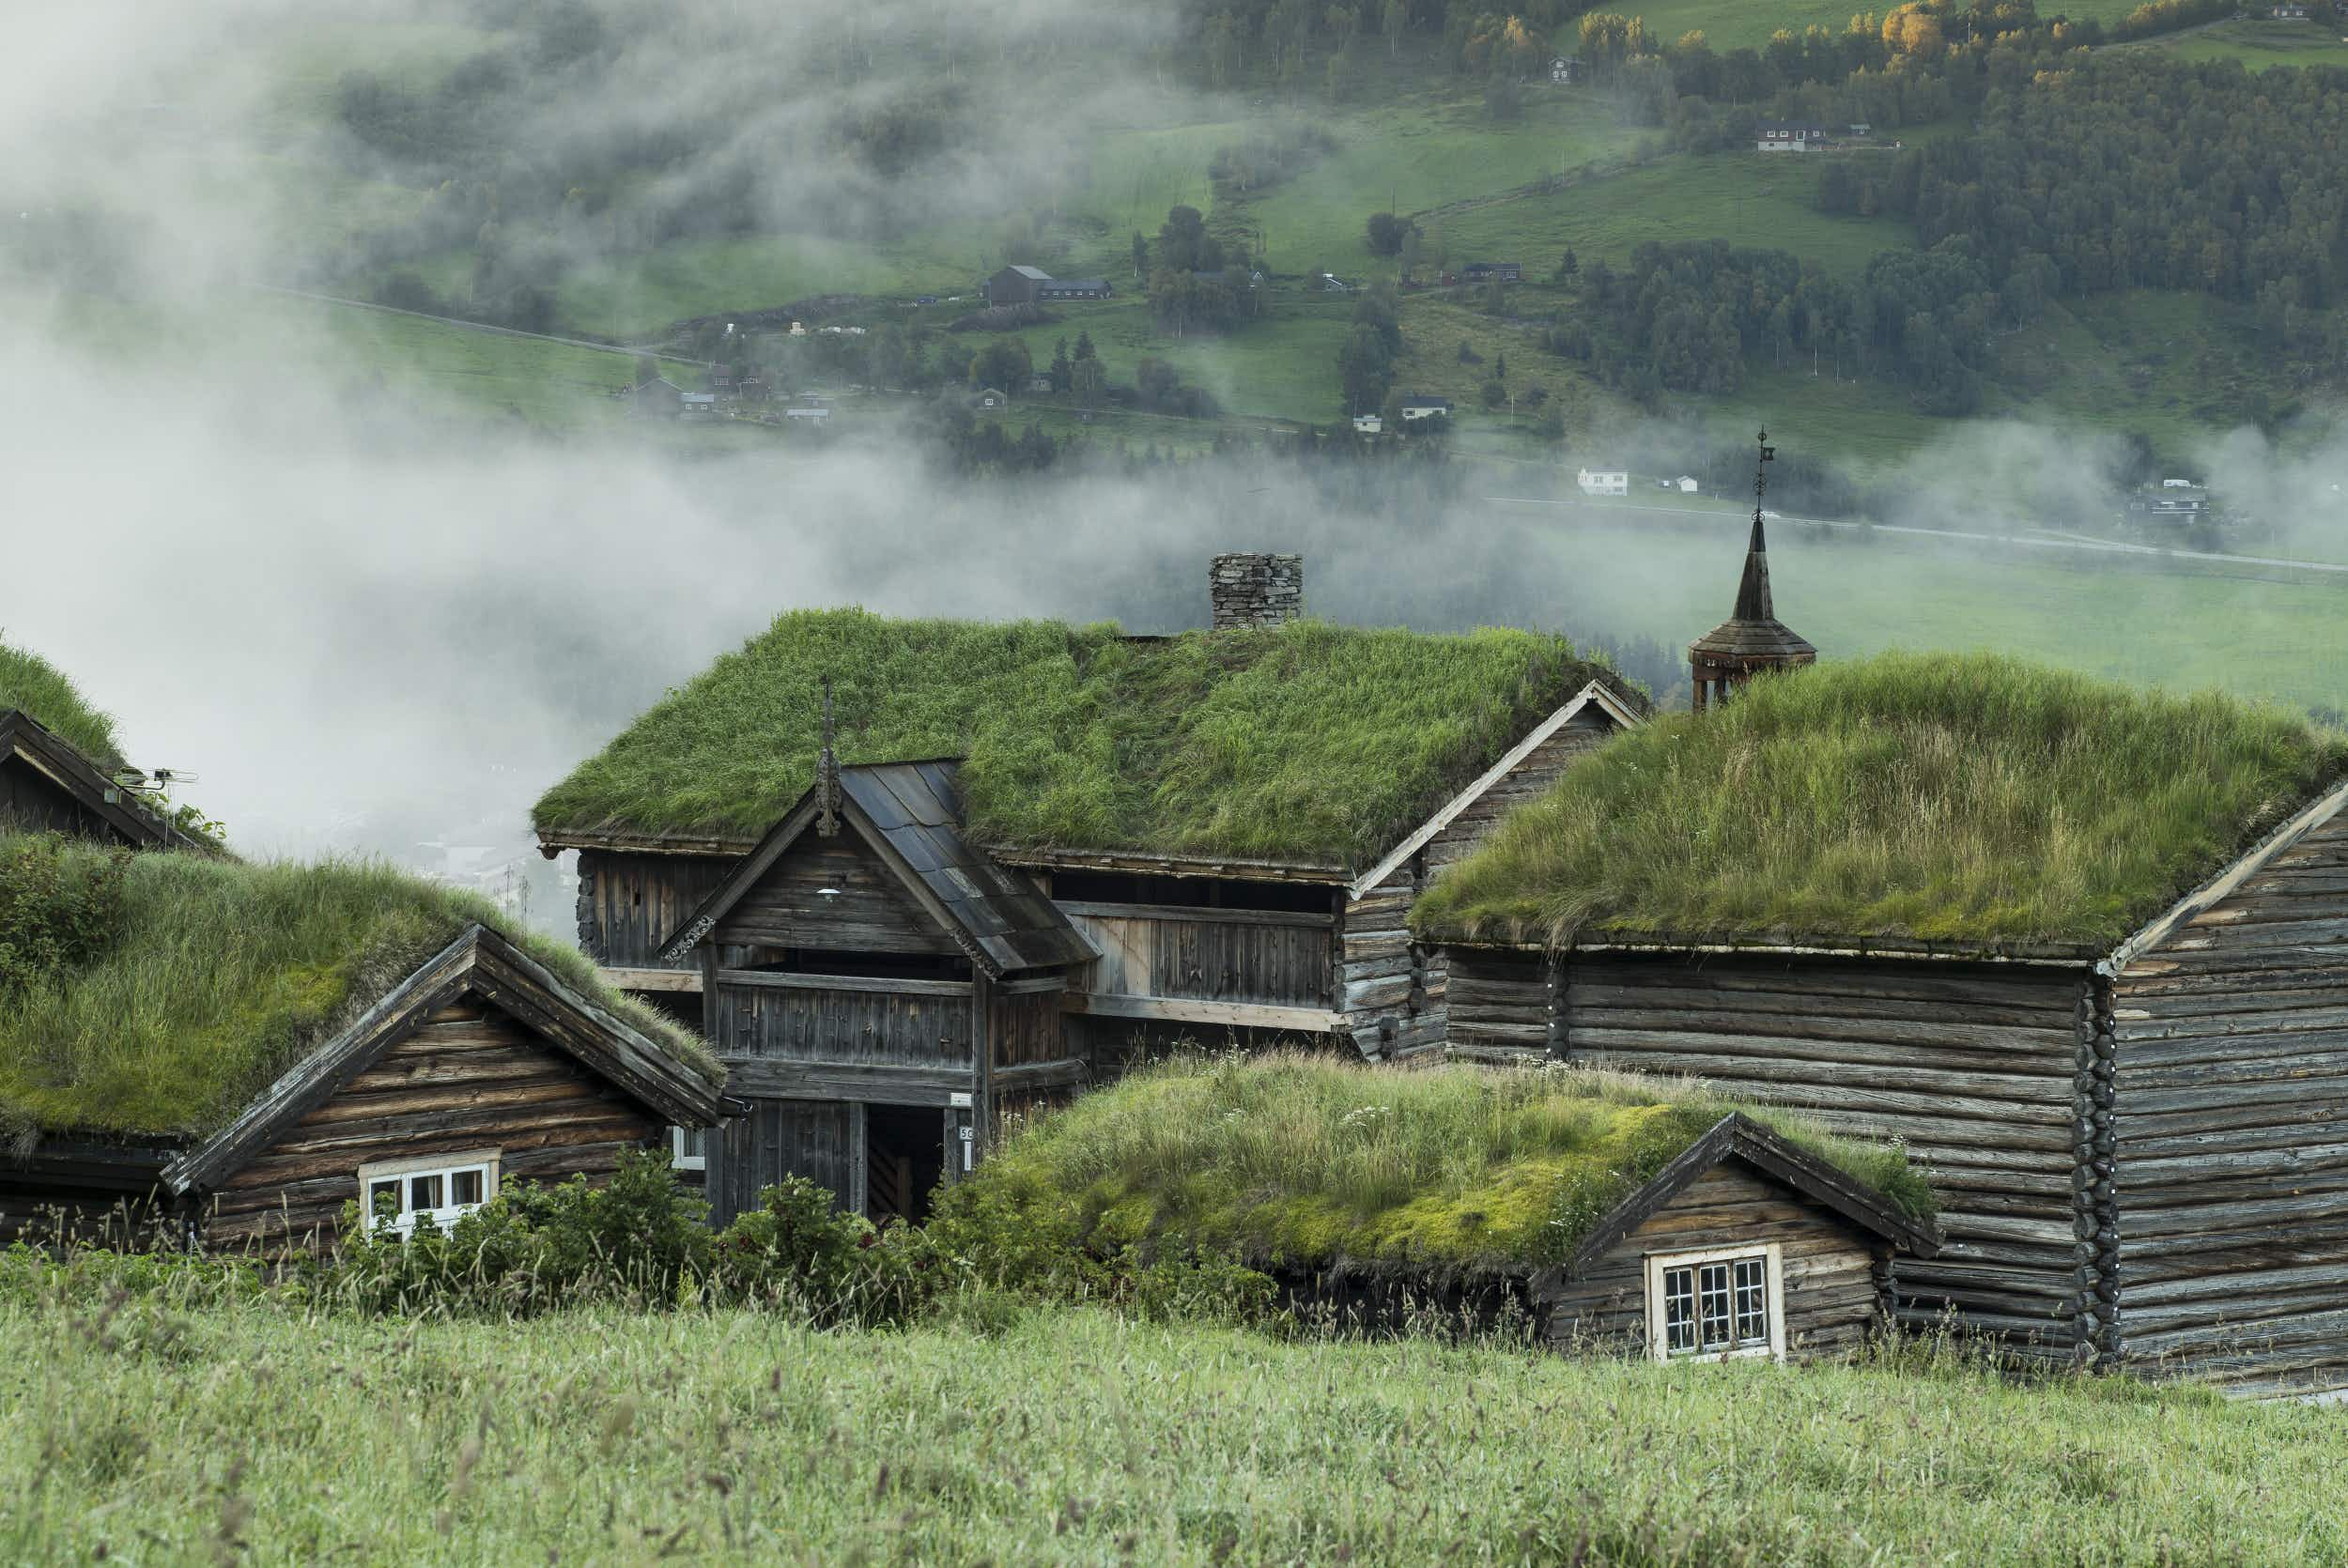 Stay in a grass-topped 17th century barn at this stunning Norwegian valley farm